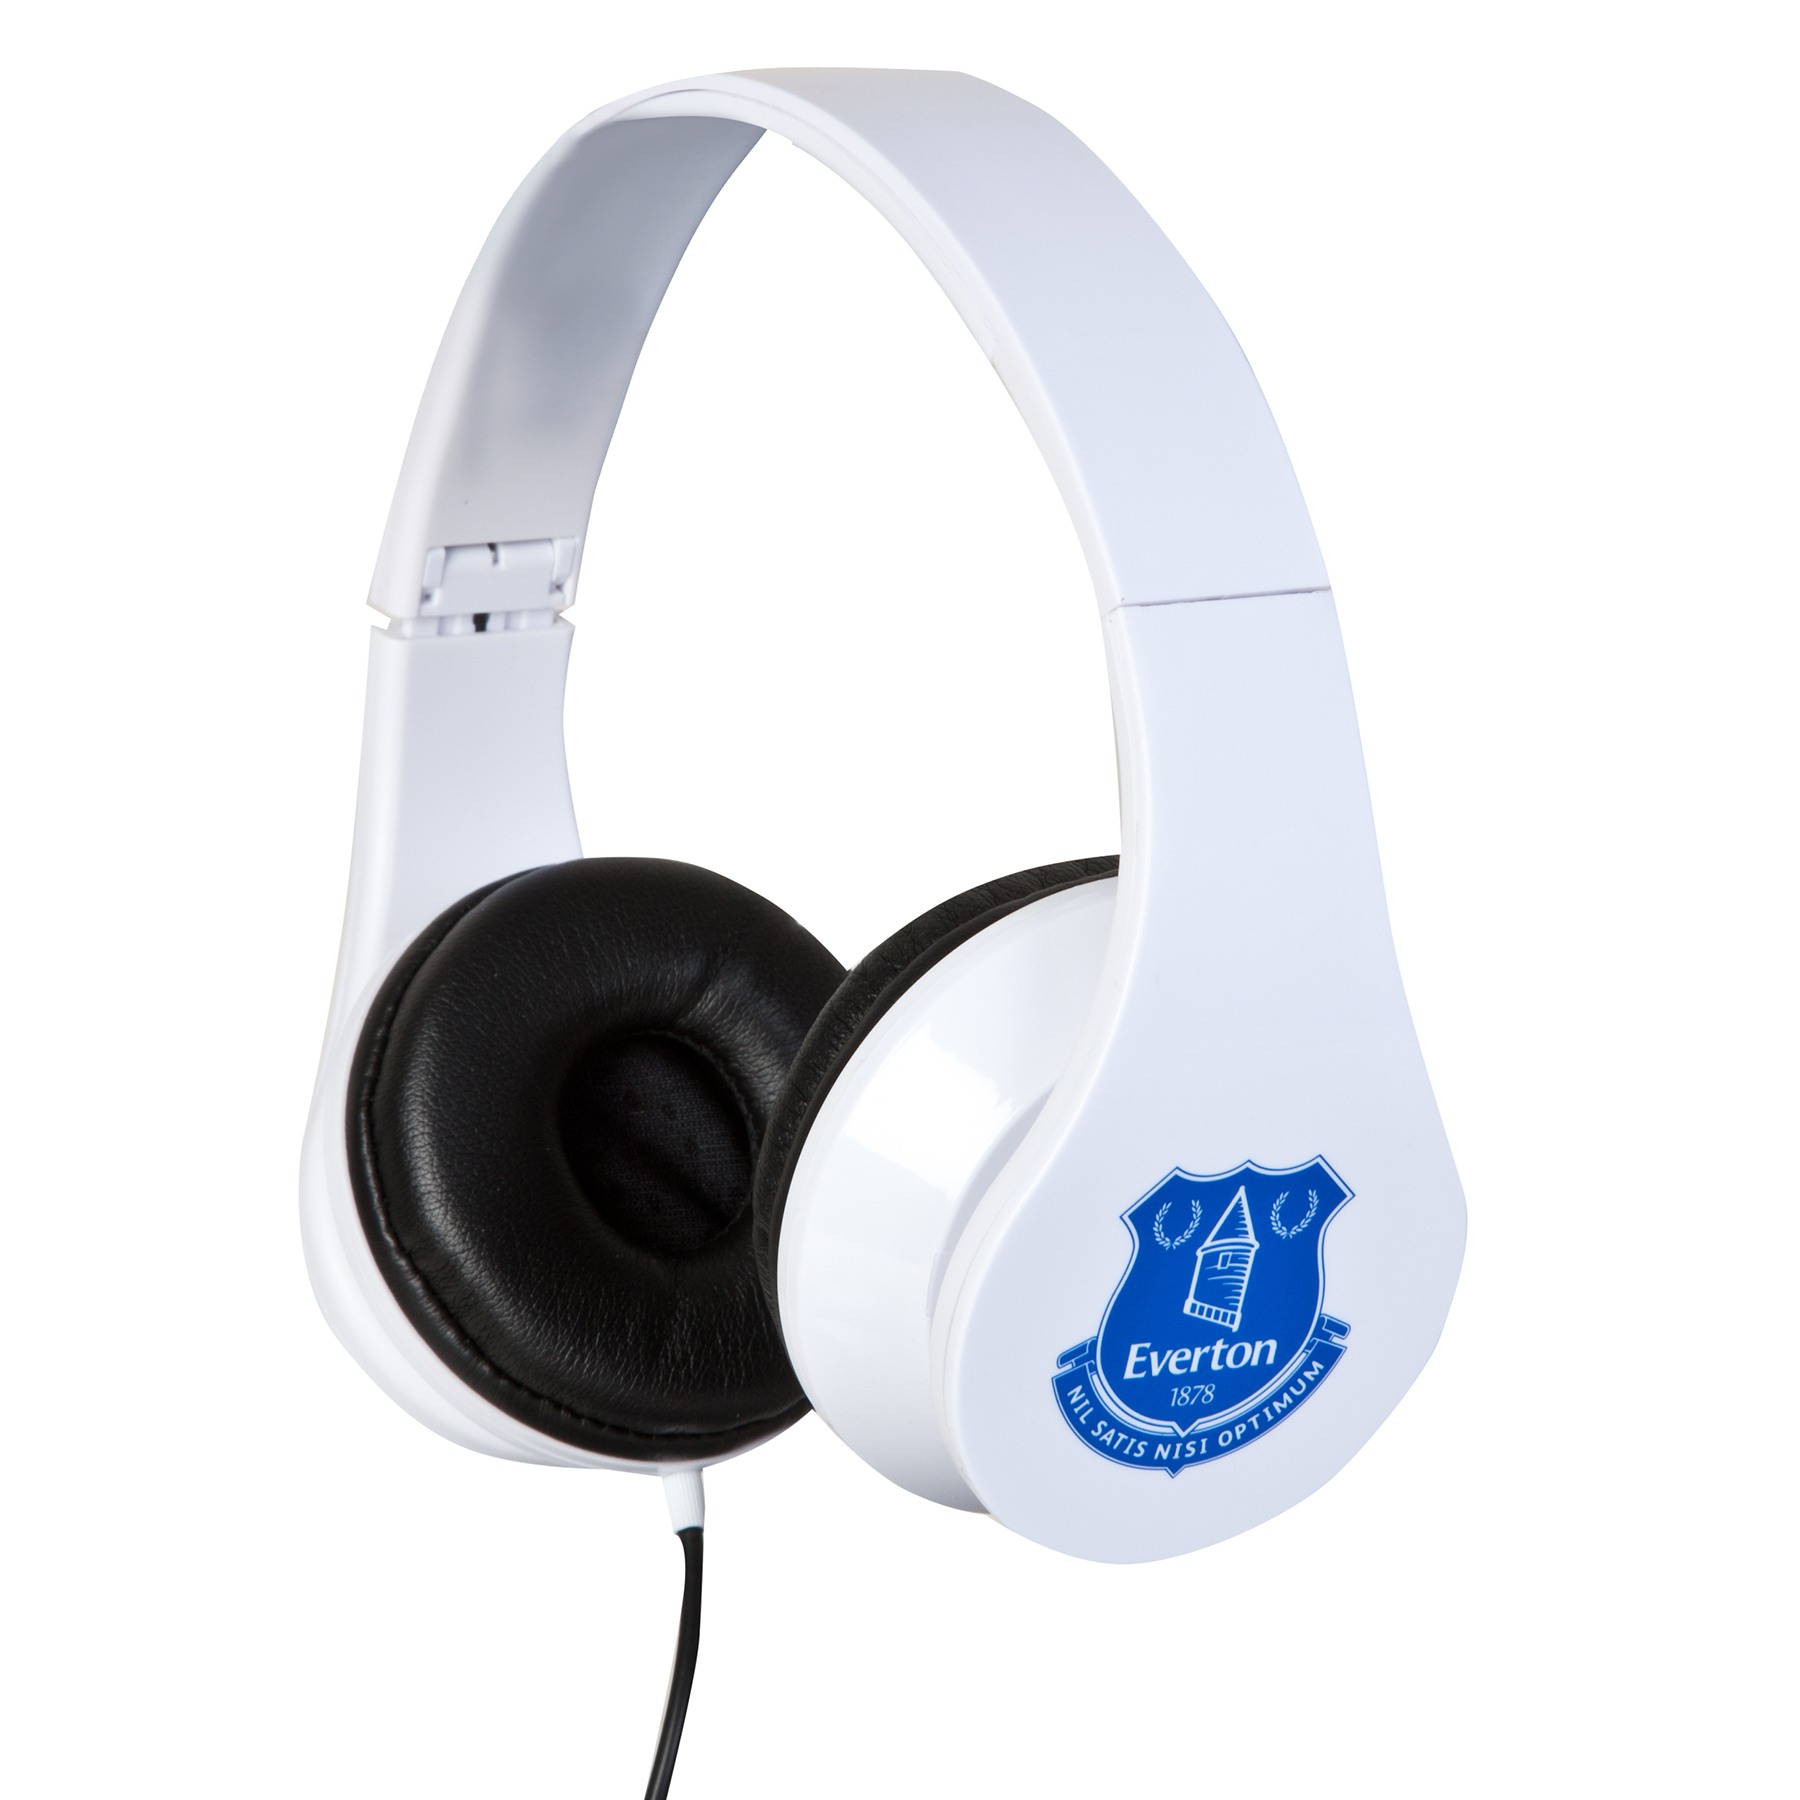 Everton Headphones